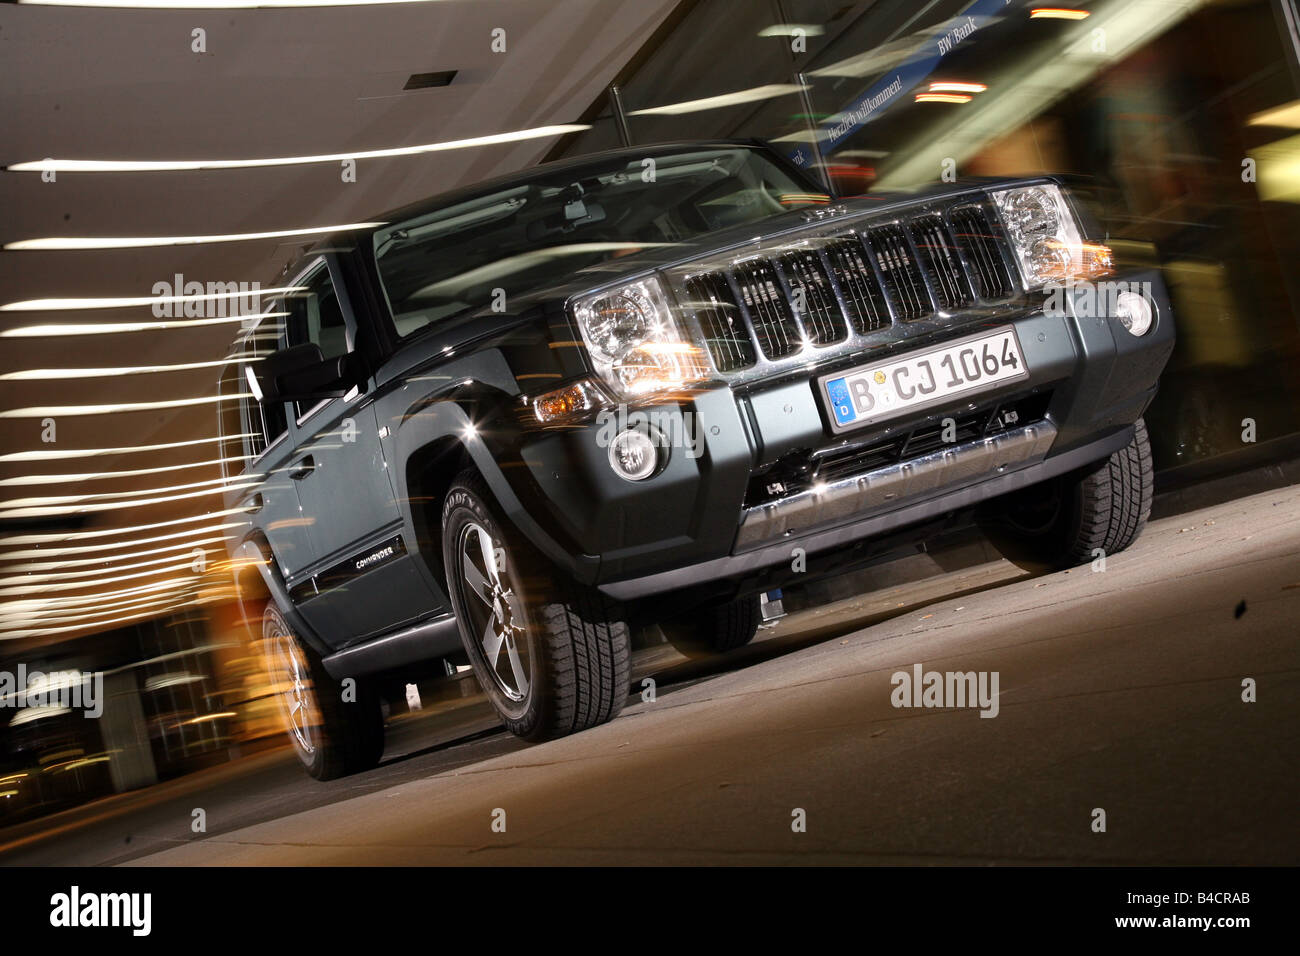 Jeep Commander 3.0 CRD, model year 2006-, silver, driving, diagonal from the front, frontal view, City, night shot, - Stock Image